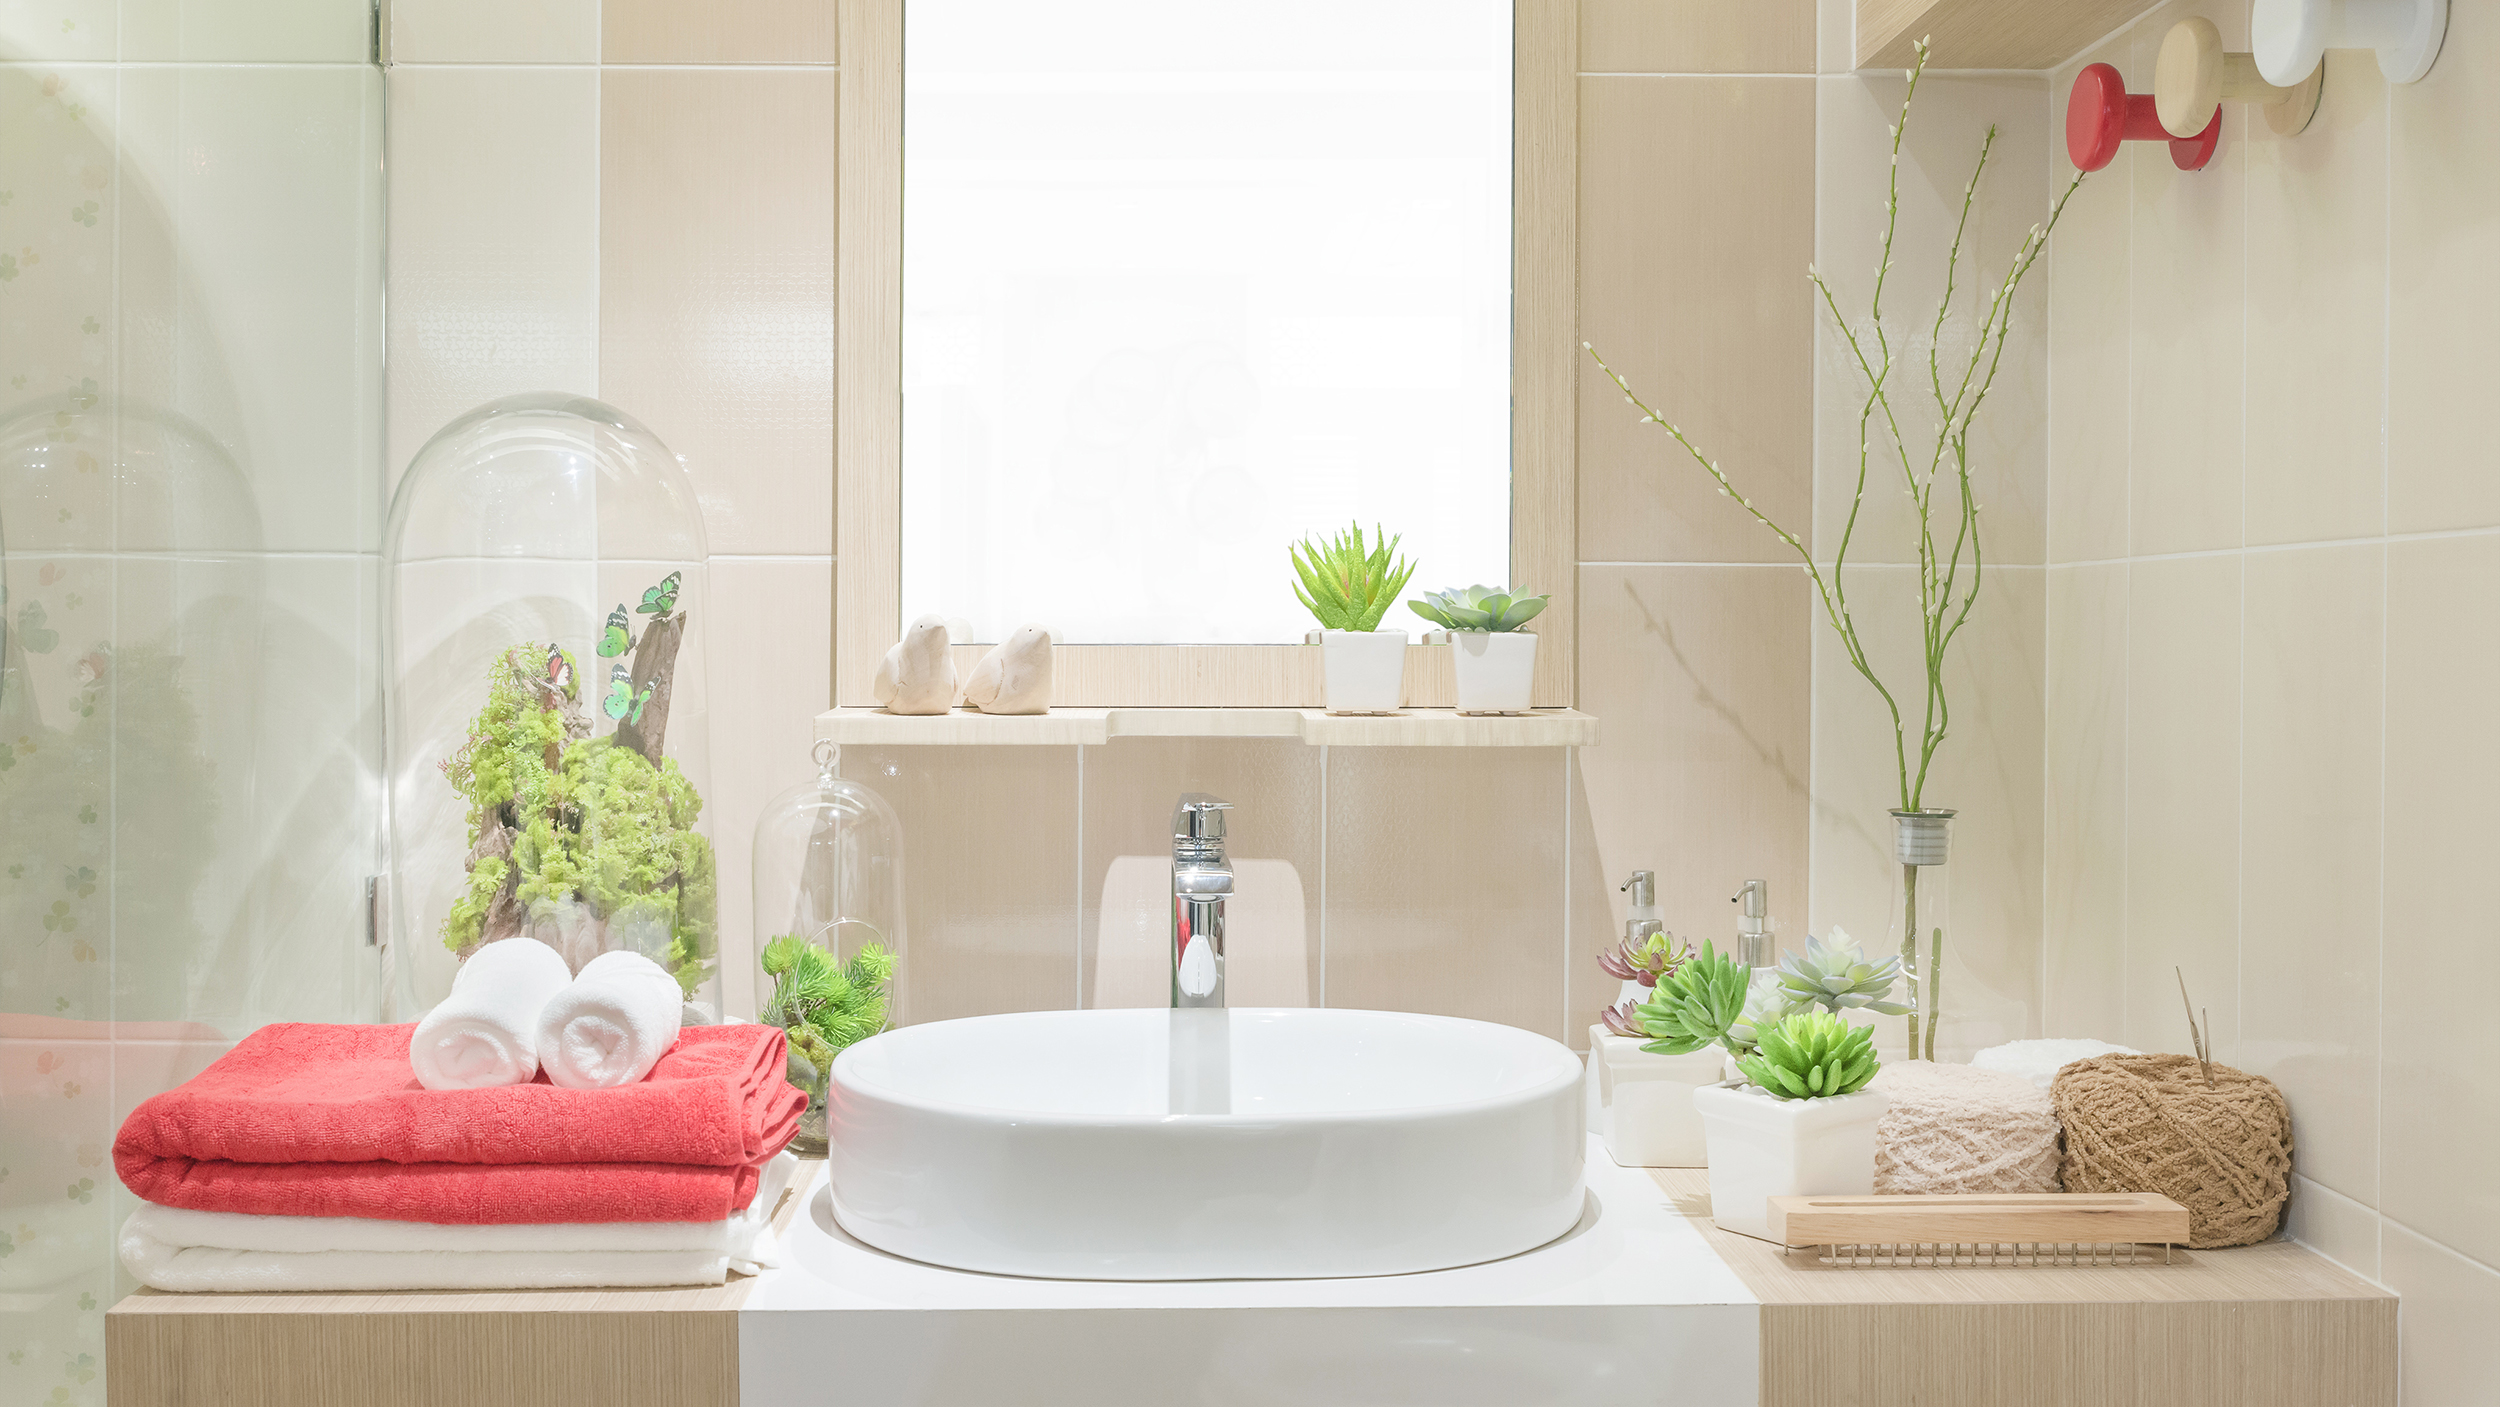 Badezimmer Set One 3 Benefits Of Bathroom And Shower Plants - Today.com